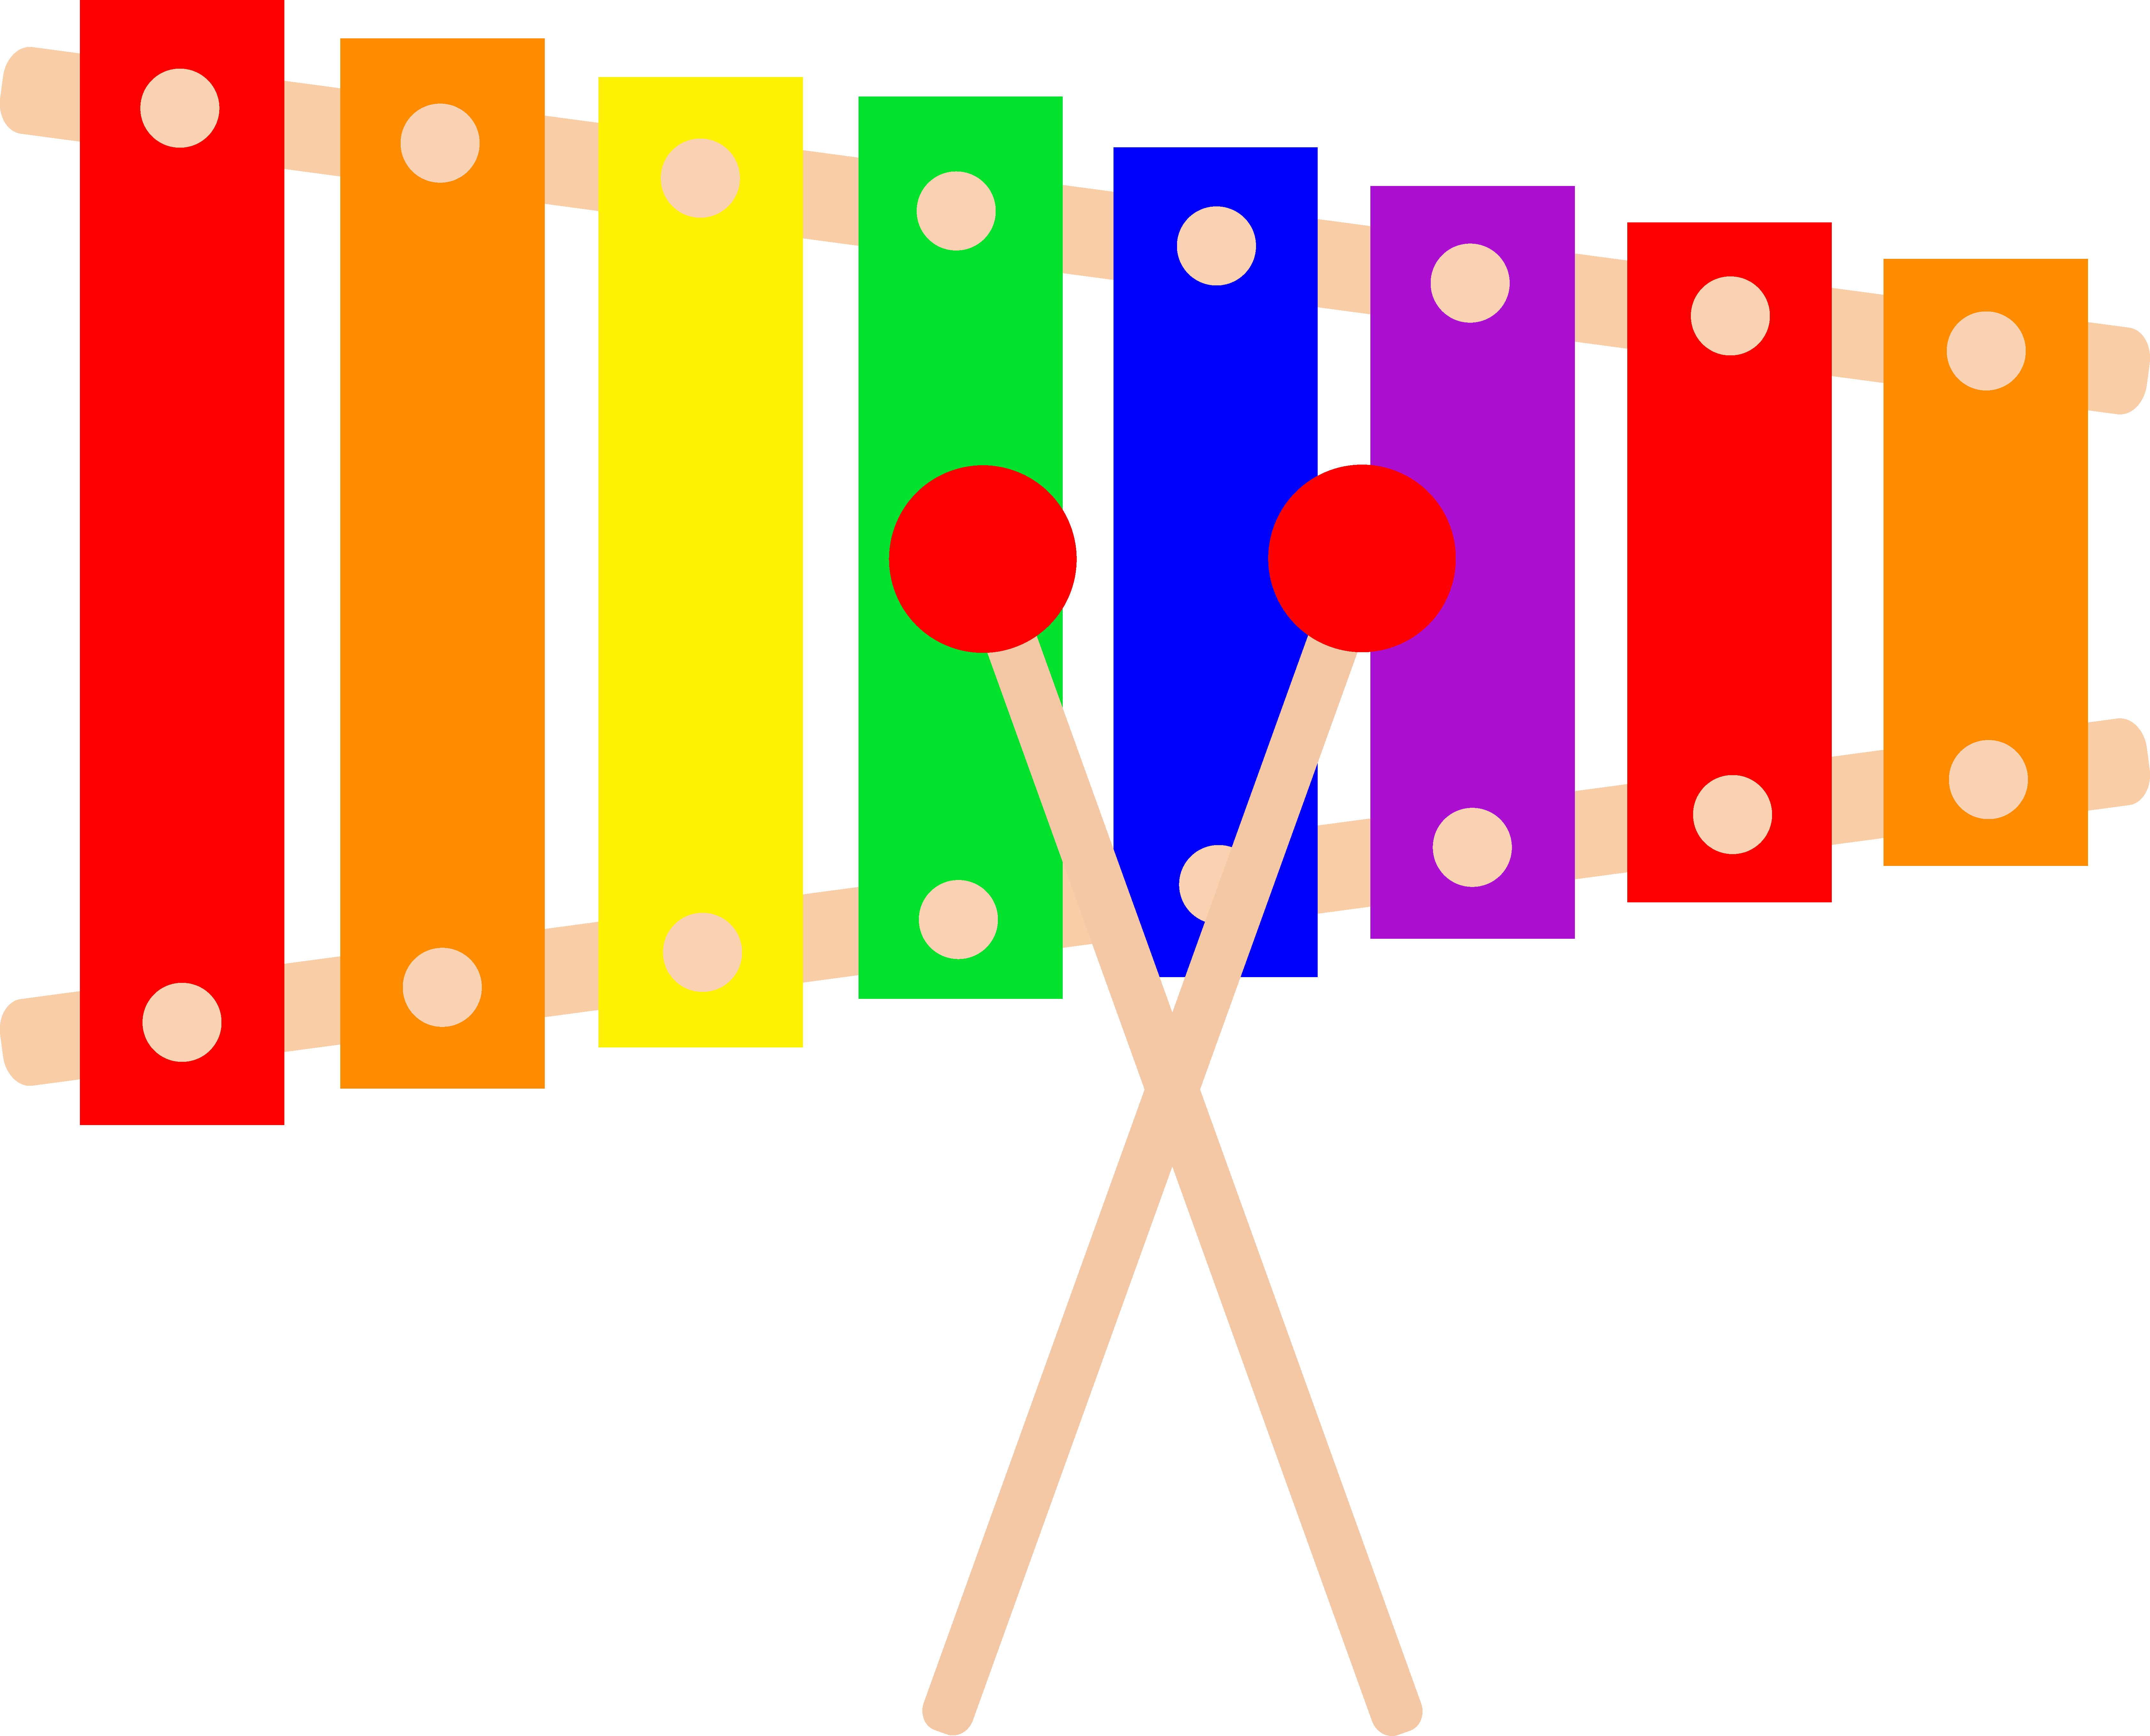 Victorian clipart xylophone clipart freeuse download Colorful Xylophone Design - Free Clip Art clipart freeuse download